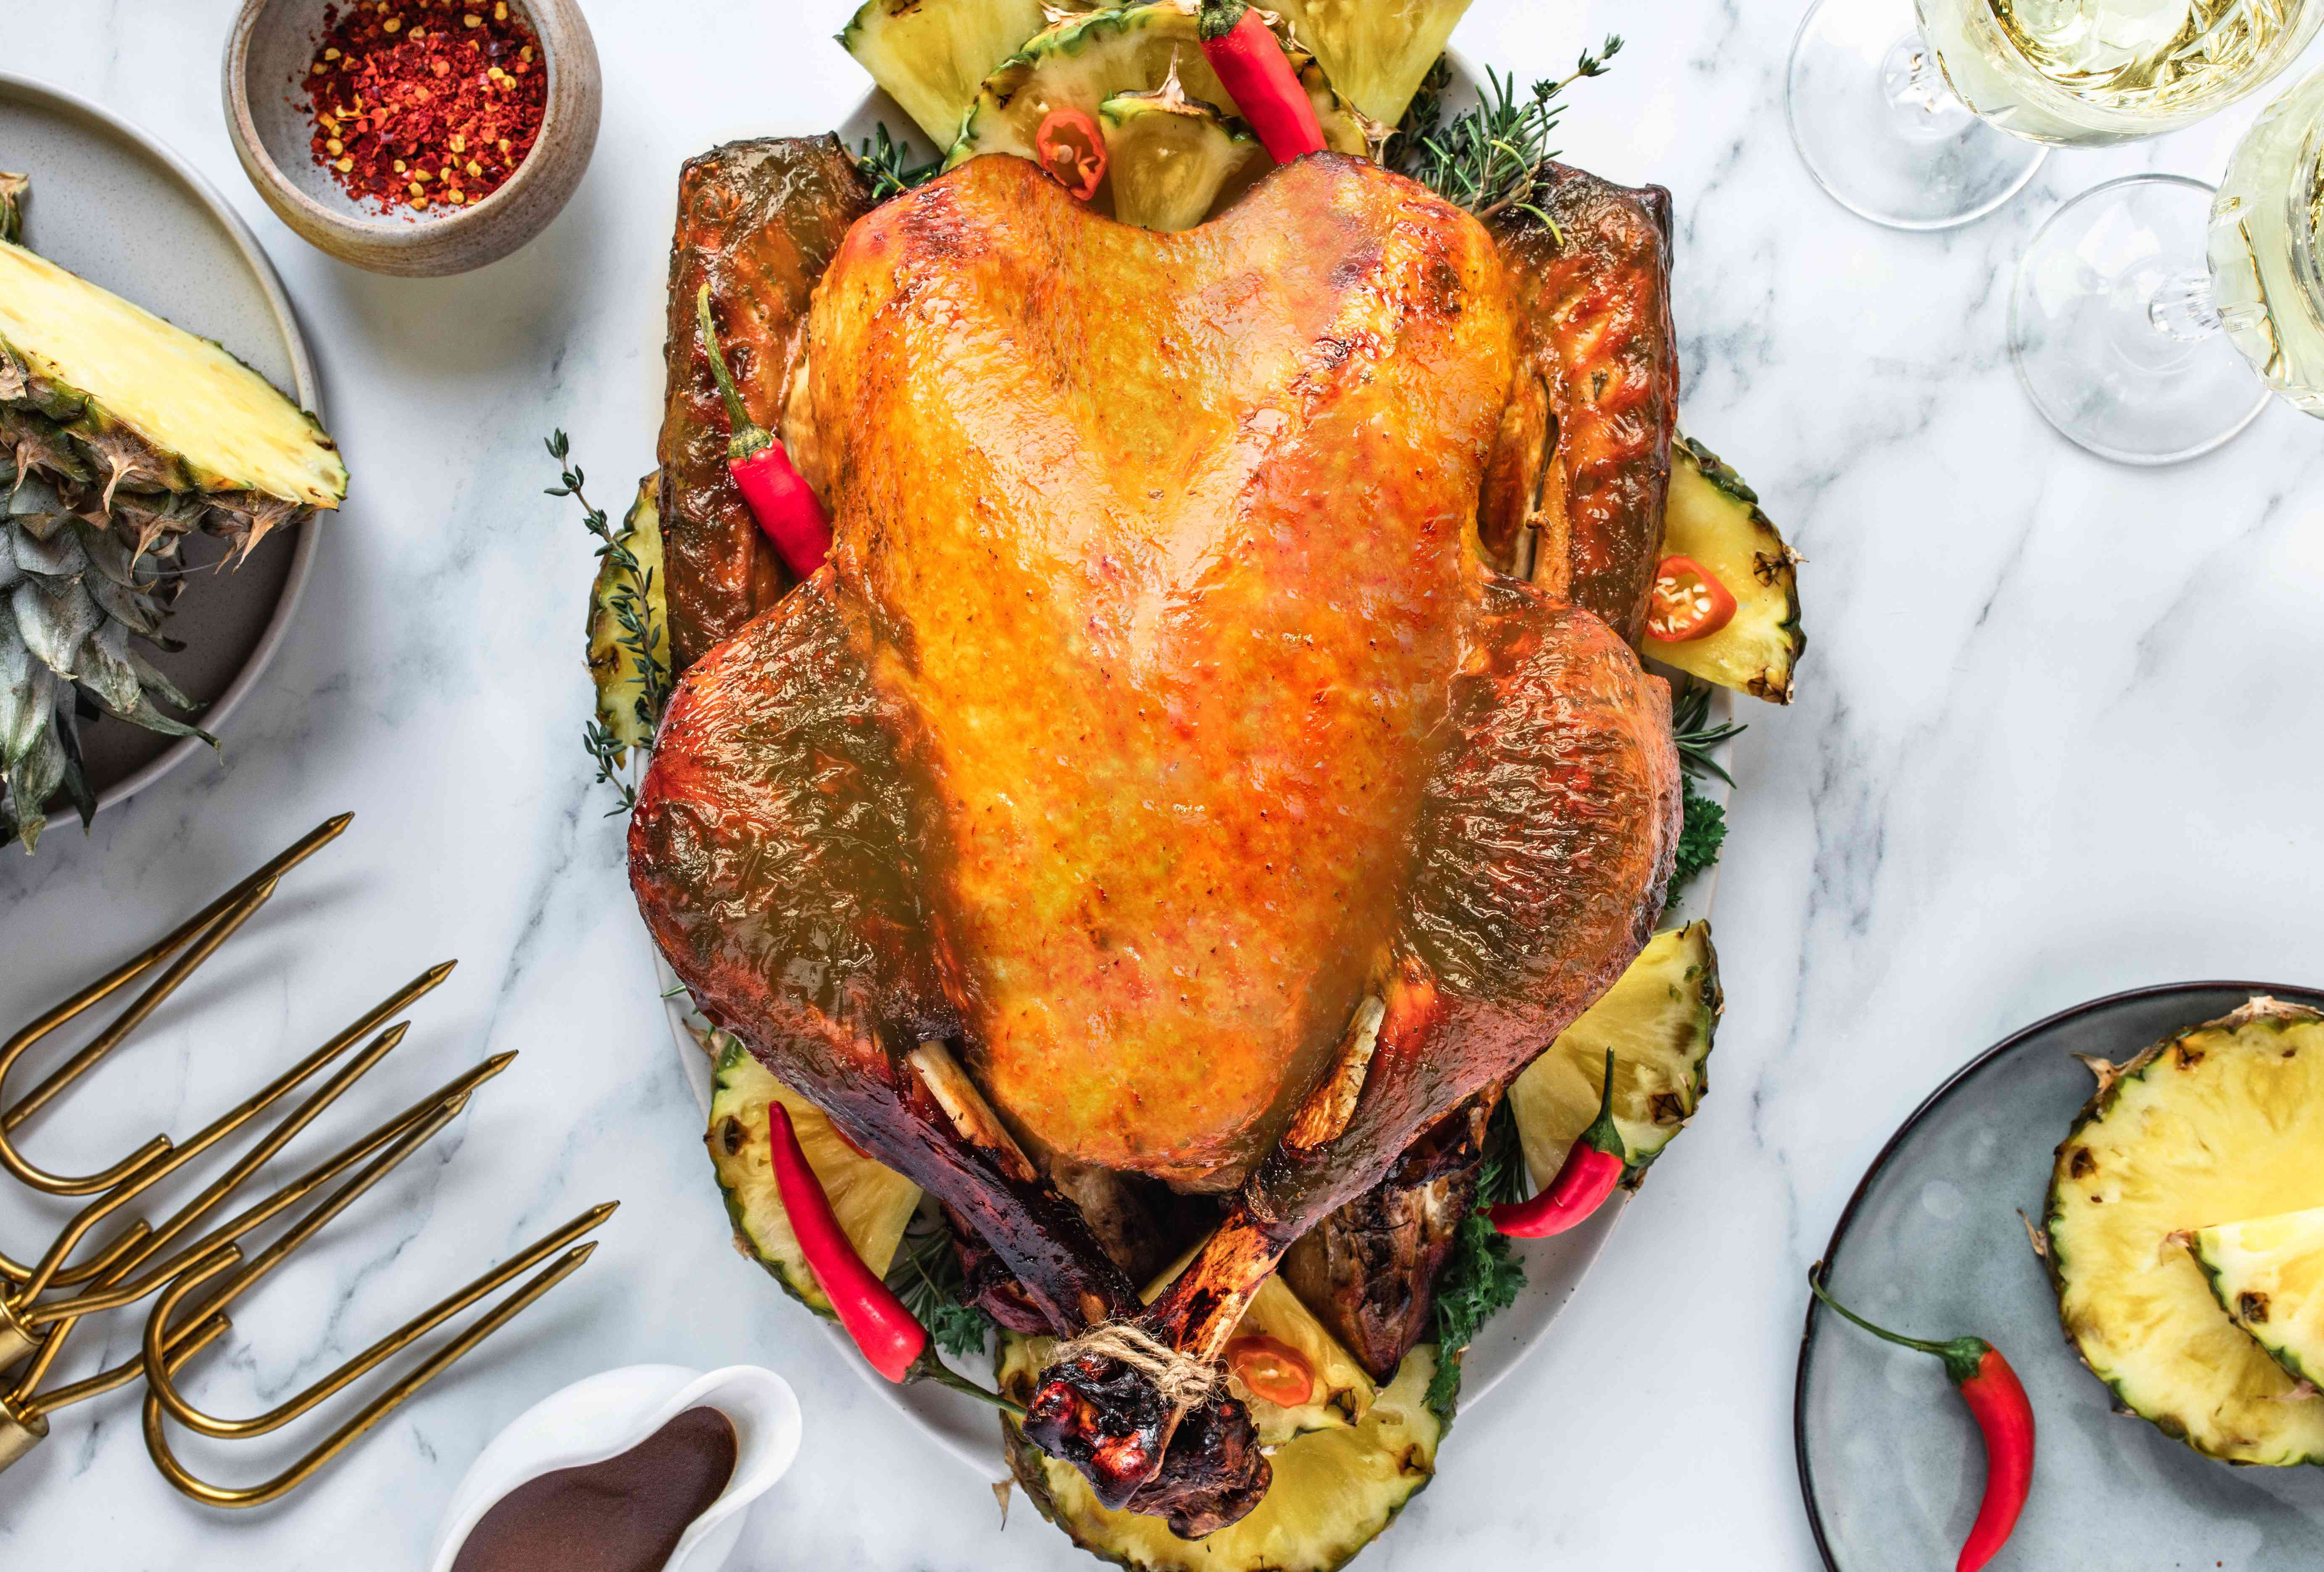 Cook the turkey